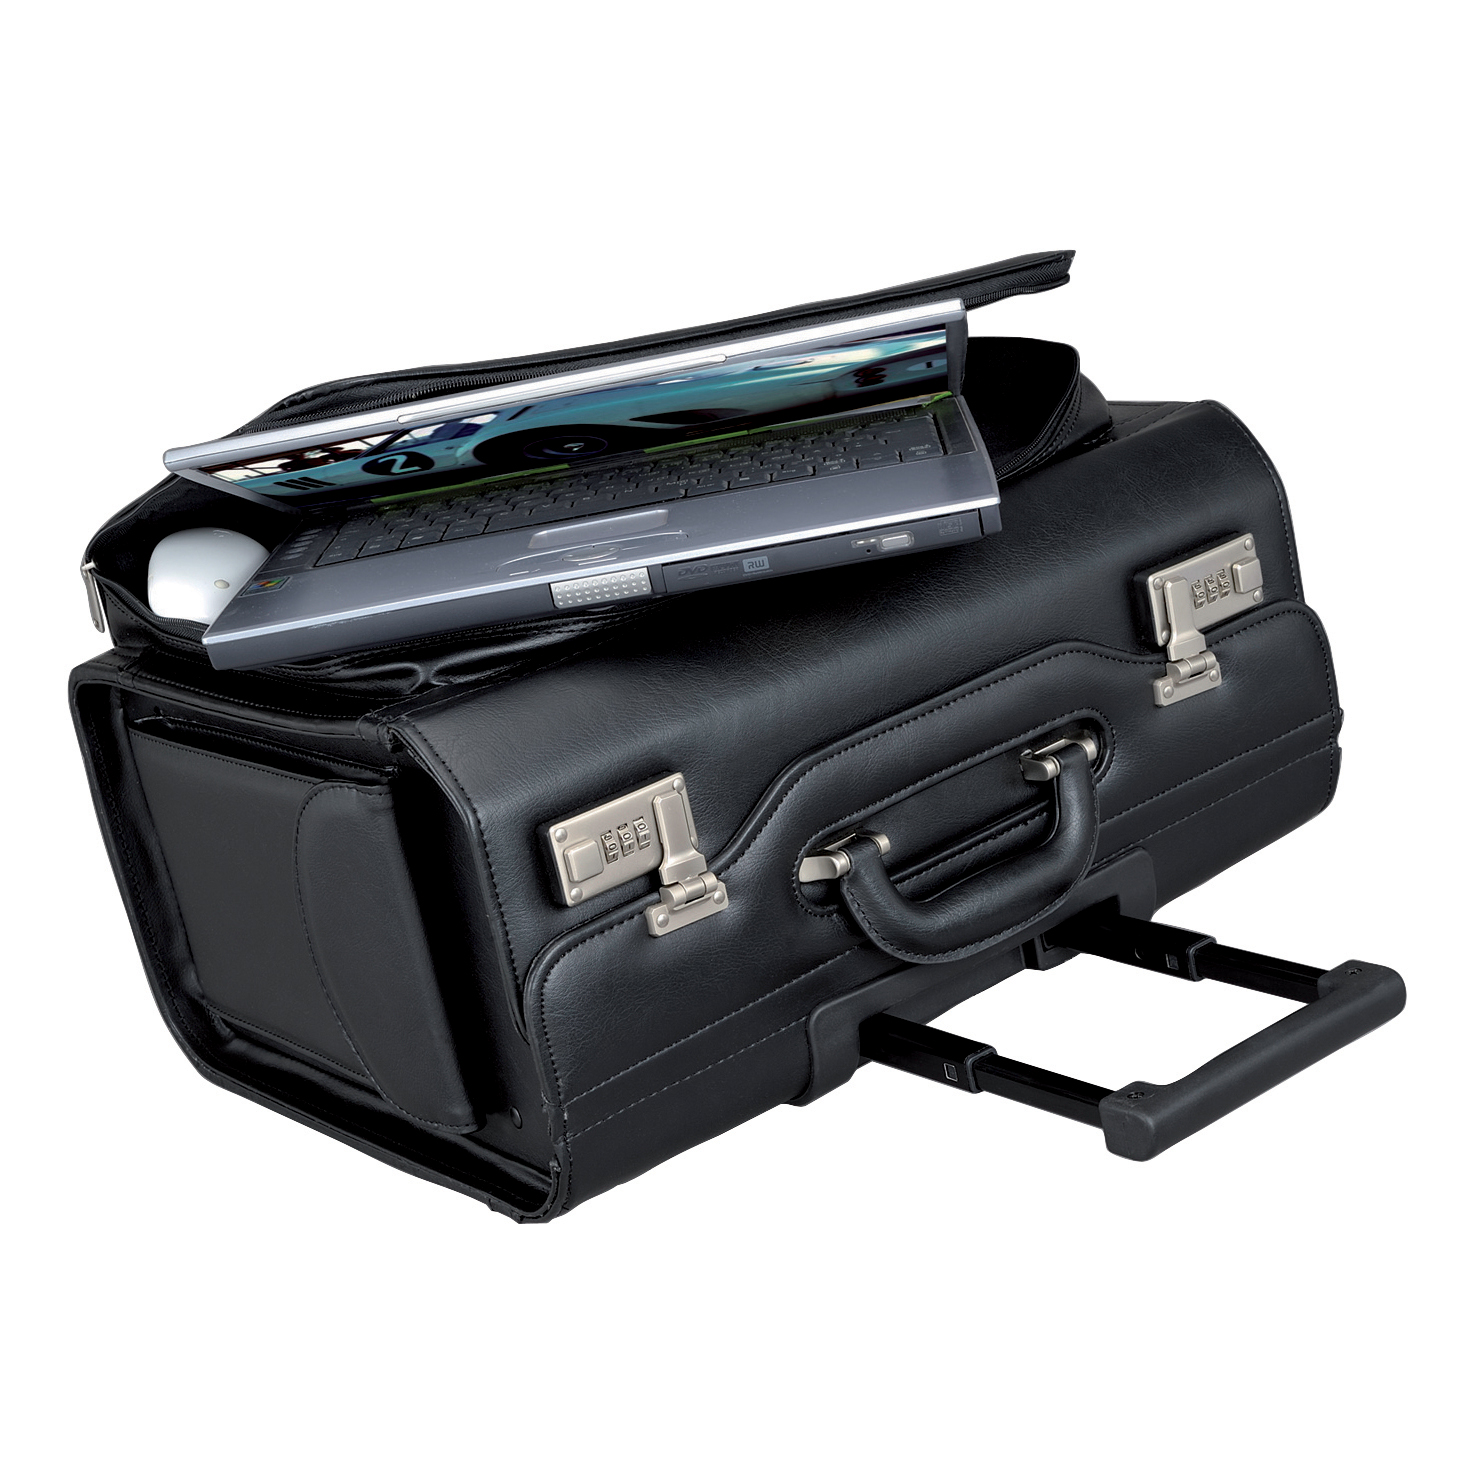 b77f6017dae Alassio San Remo Trolley Pilot Case Multi-section 2 Combination Locks  Leather-look Black Ref 45030 - 5 Star Office Supplies UK